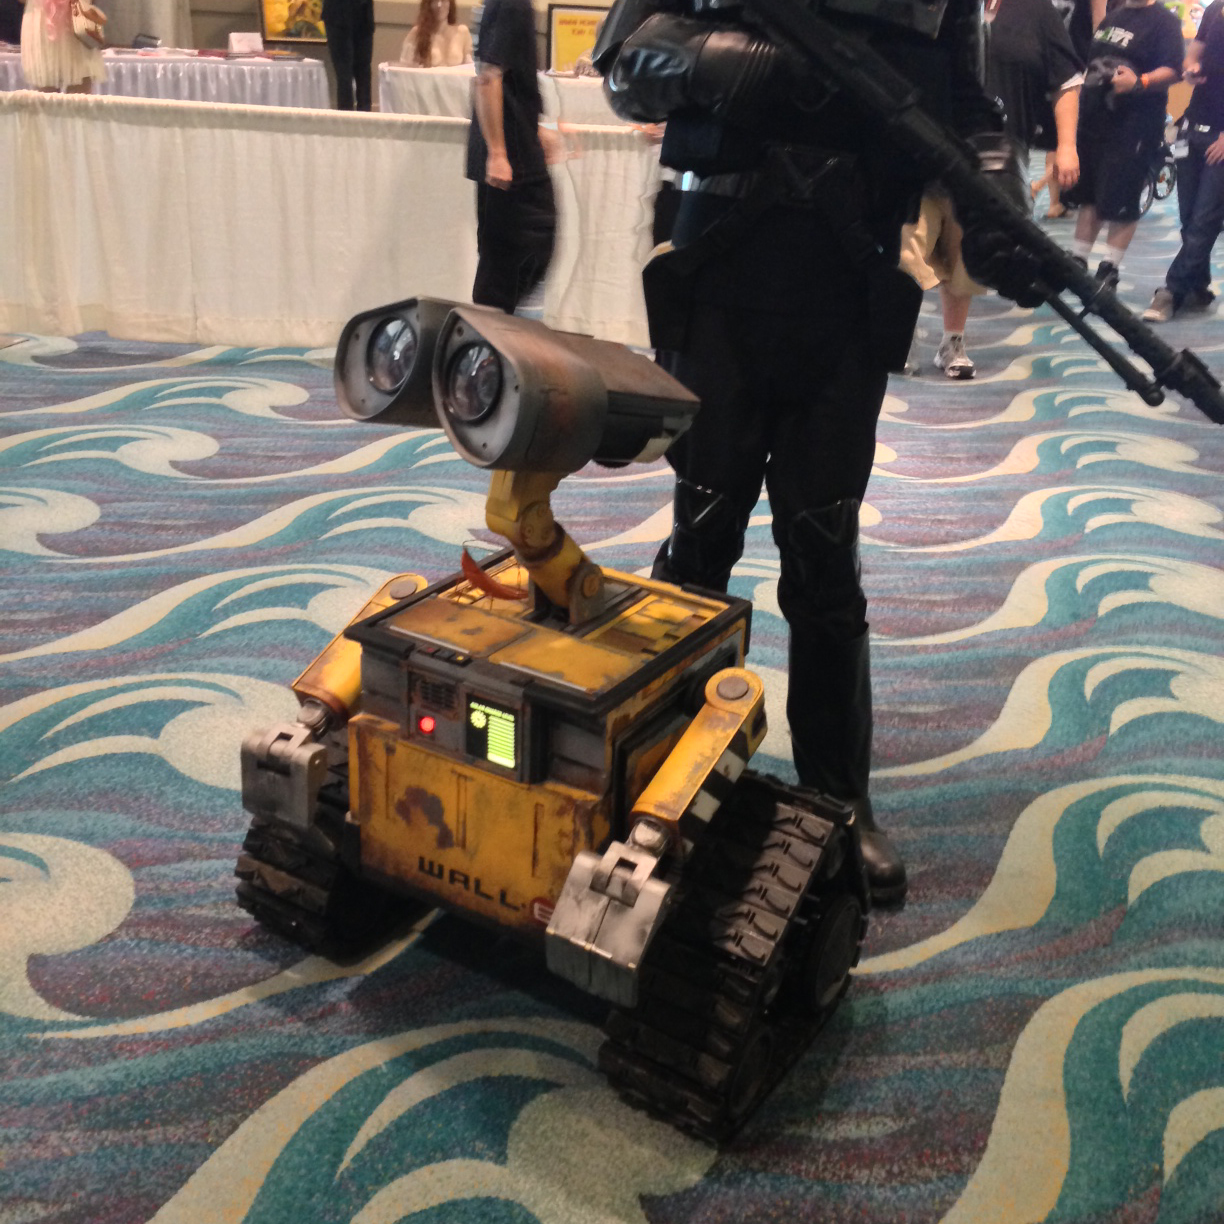 A life-sized, working, robotic Wall-e. Definitely my favorite character of the day, although there were some great costumes there.